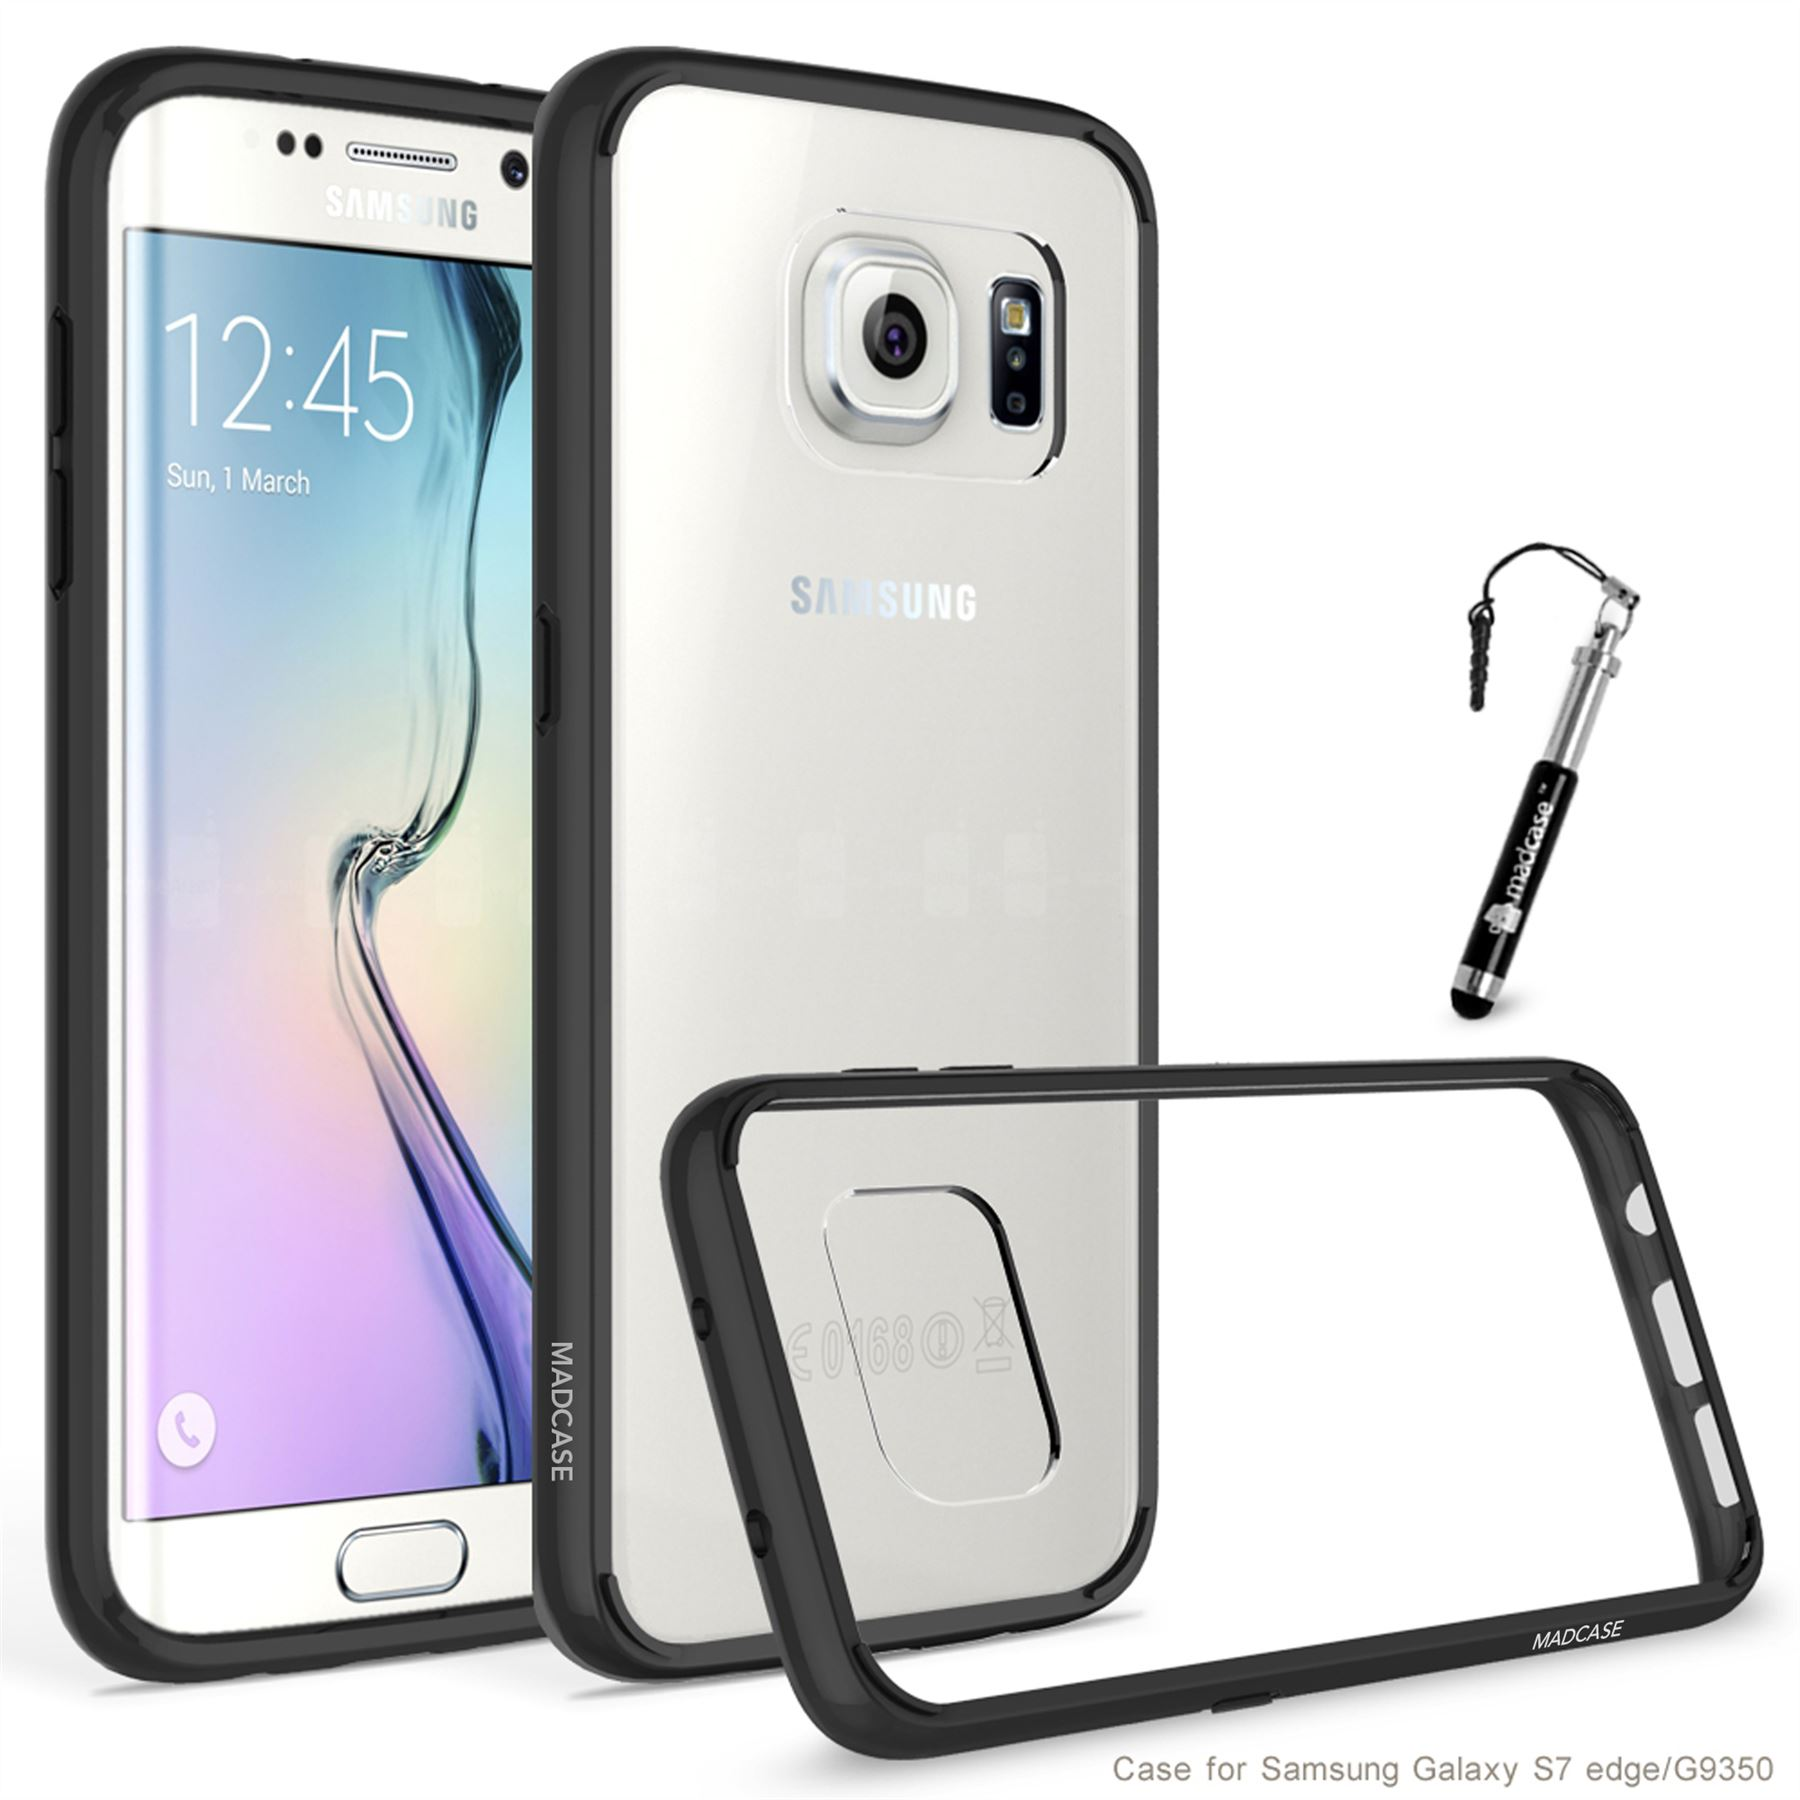 online store 7764e e2bb2 Details about Madcase Clear Scratch Resistant Transparent Back Case for  Samsung Galaxy S7 Edge